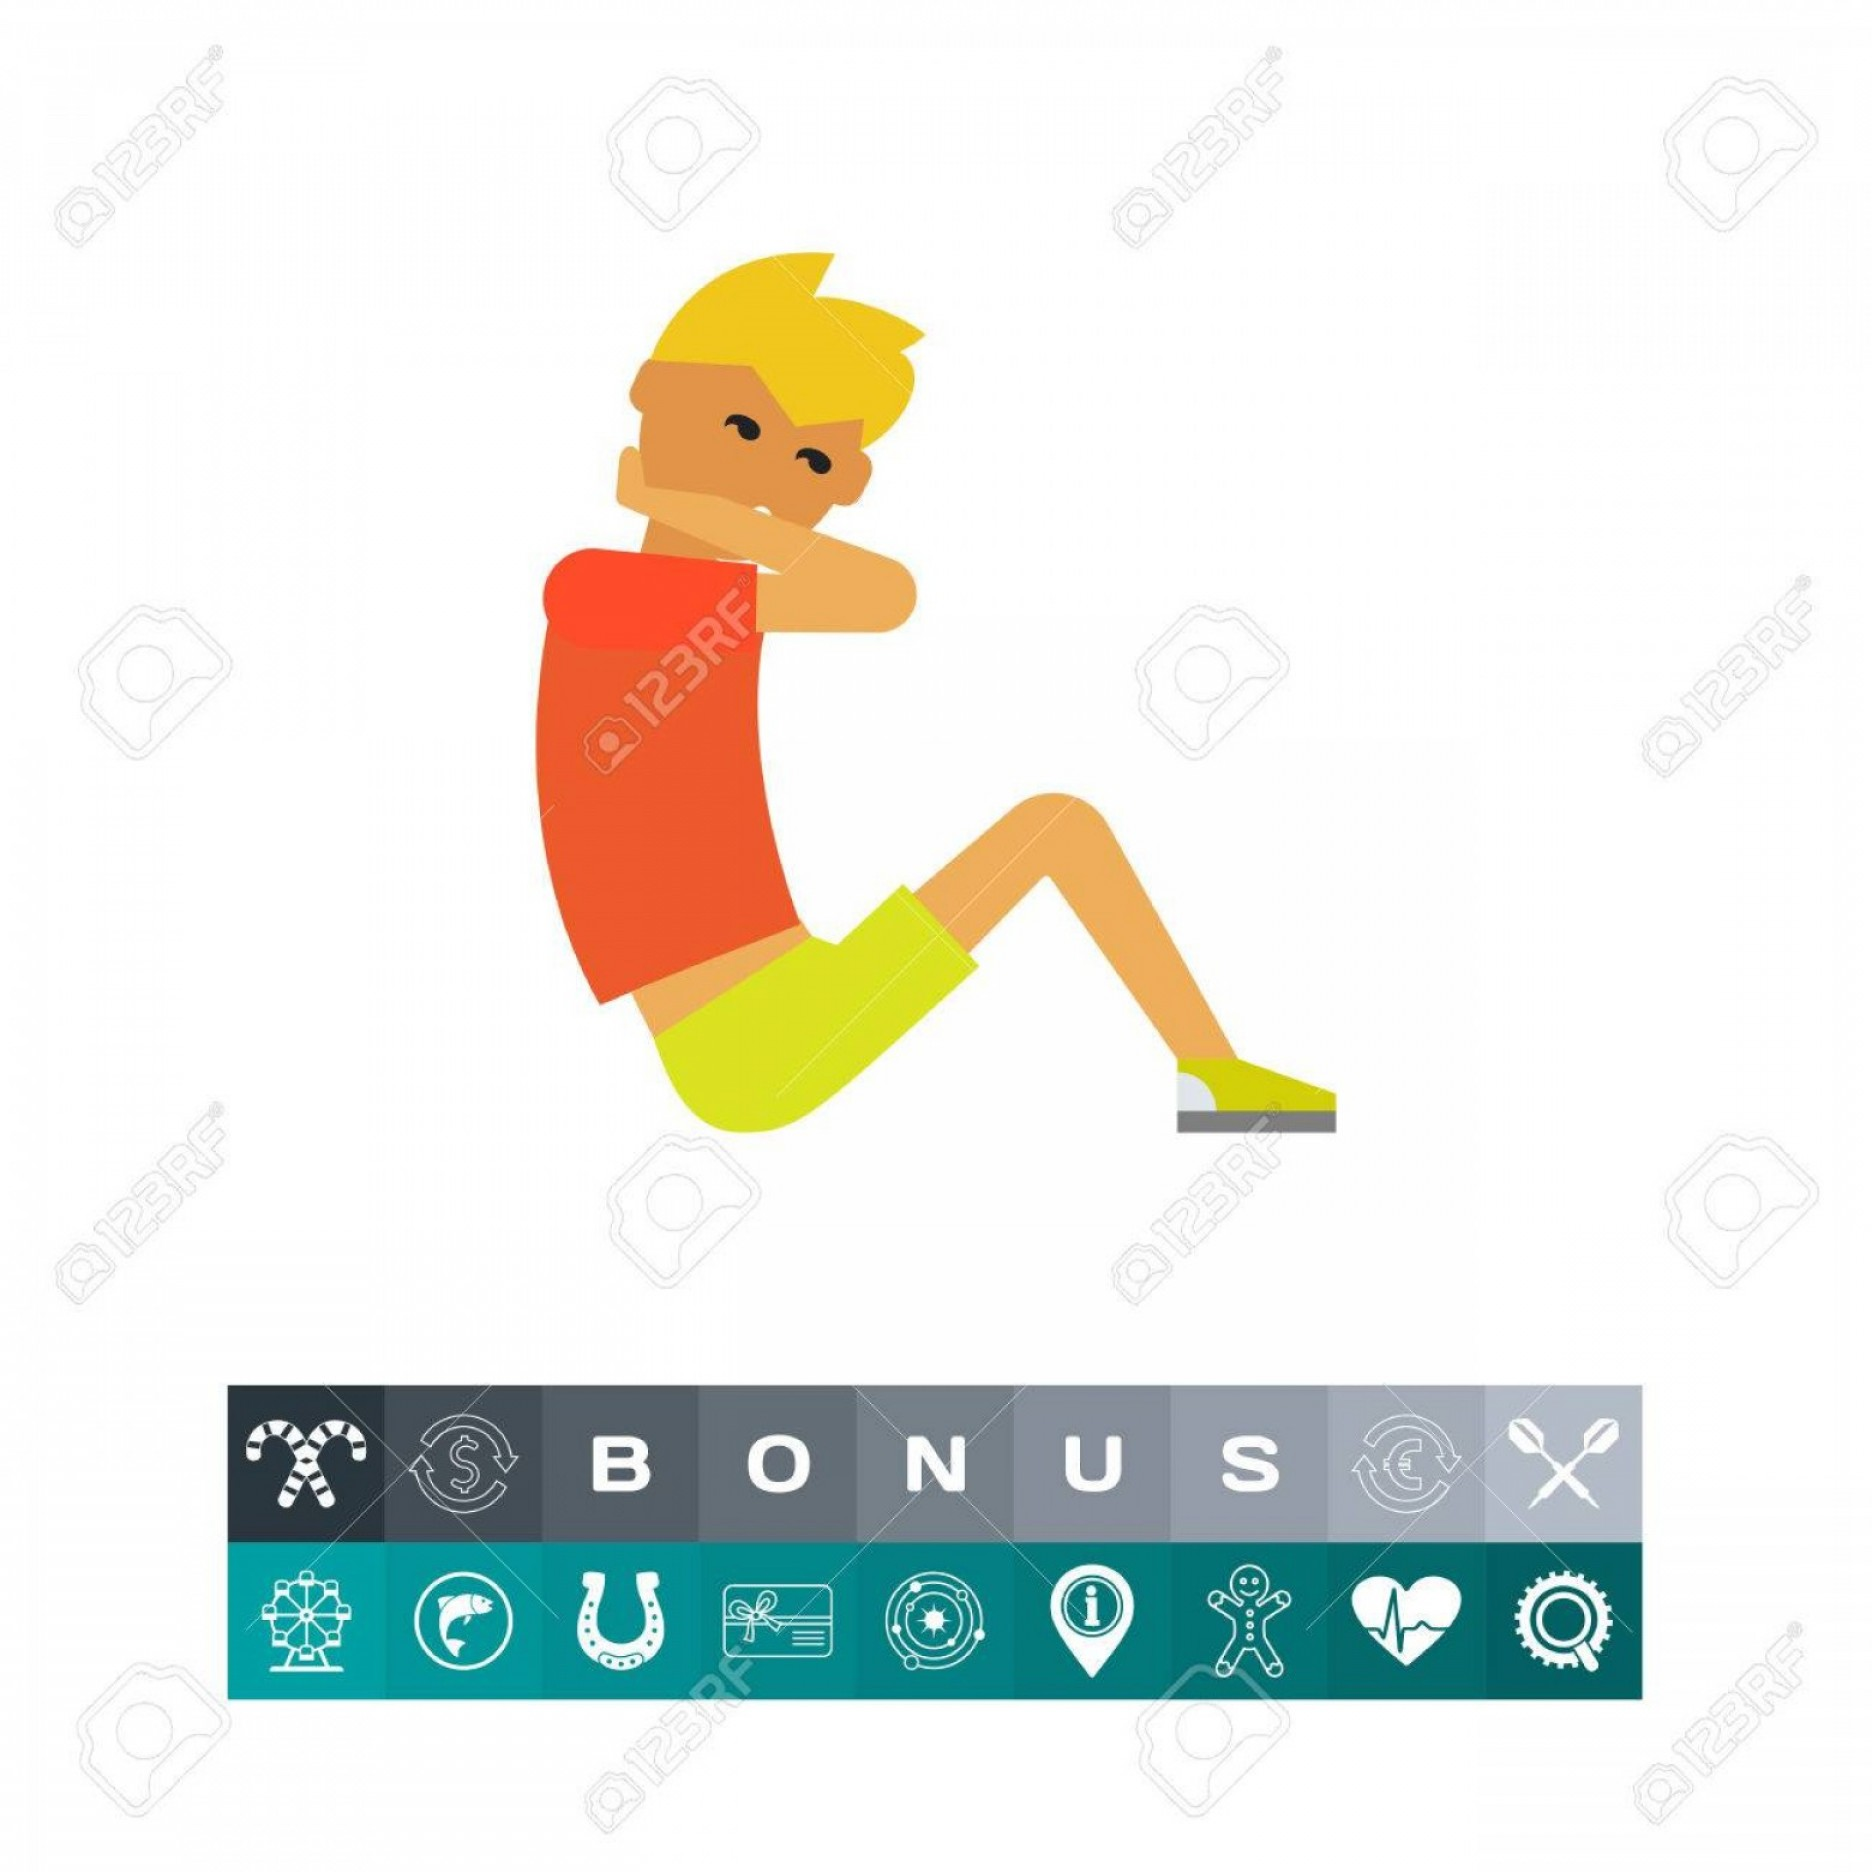 Man Vector Exercise: Photostock Vector Exercising Man Vector Icon Doing A Sit Up For Abdominal Muscle Exercise In Multicolored Illustration